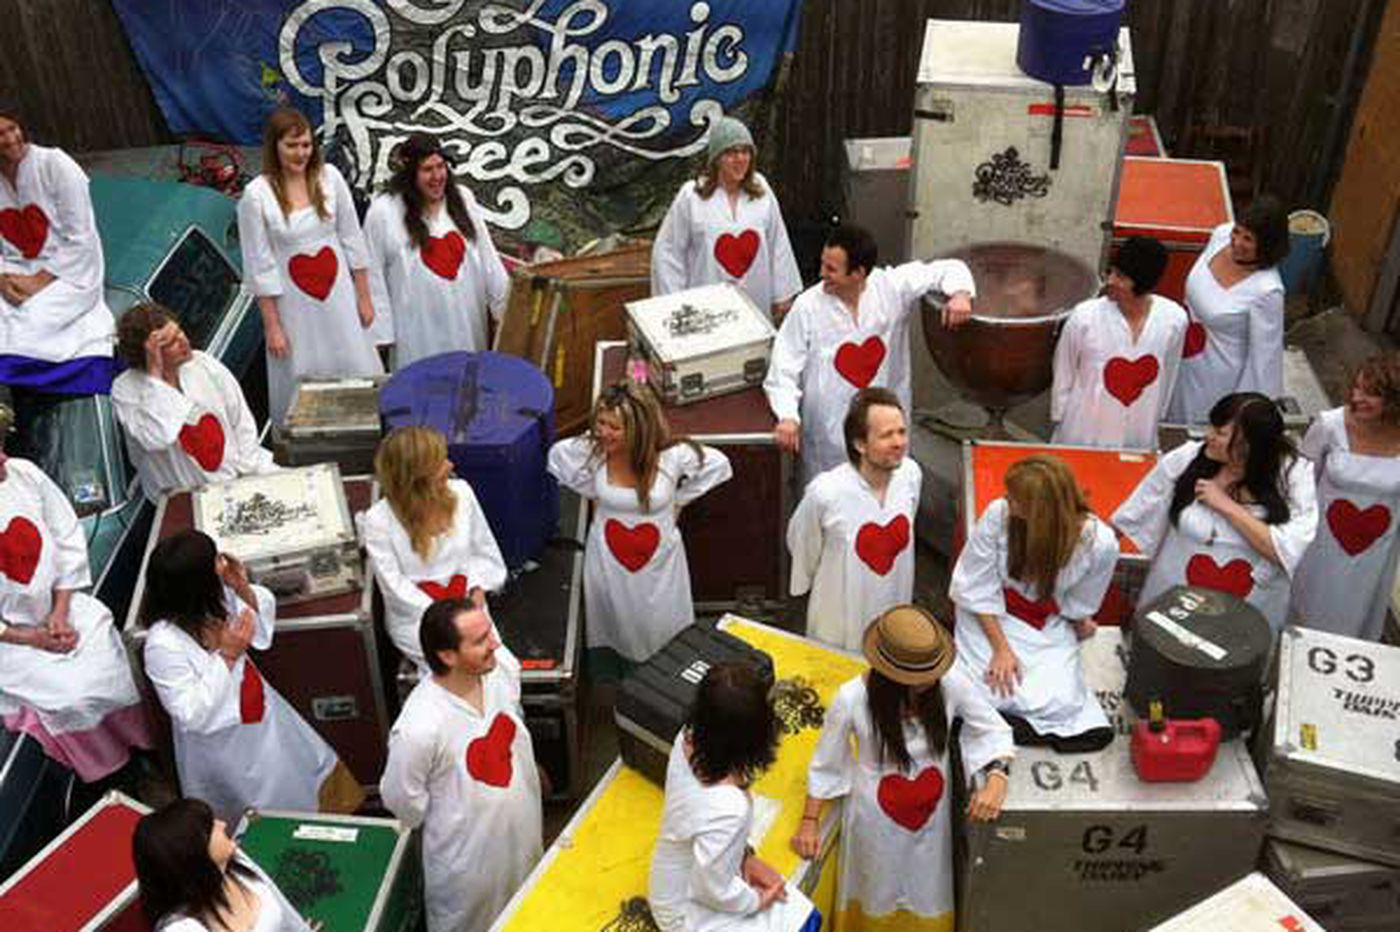 Polyphonic Spree Holiday Extravaganza at Trocadero: 'Kind of like Laugh-In'